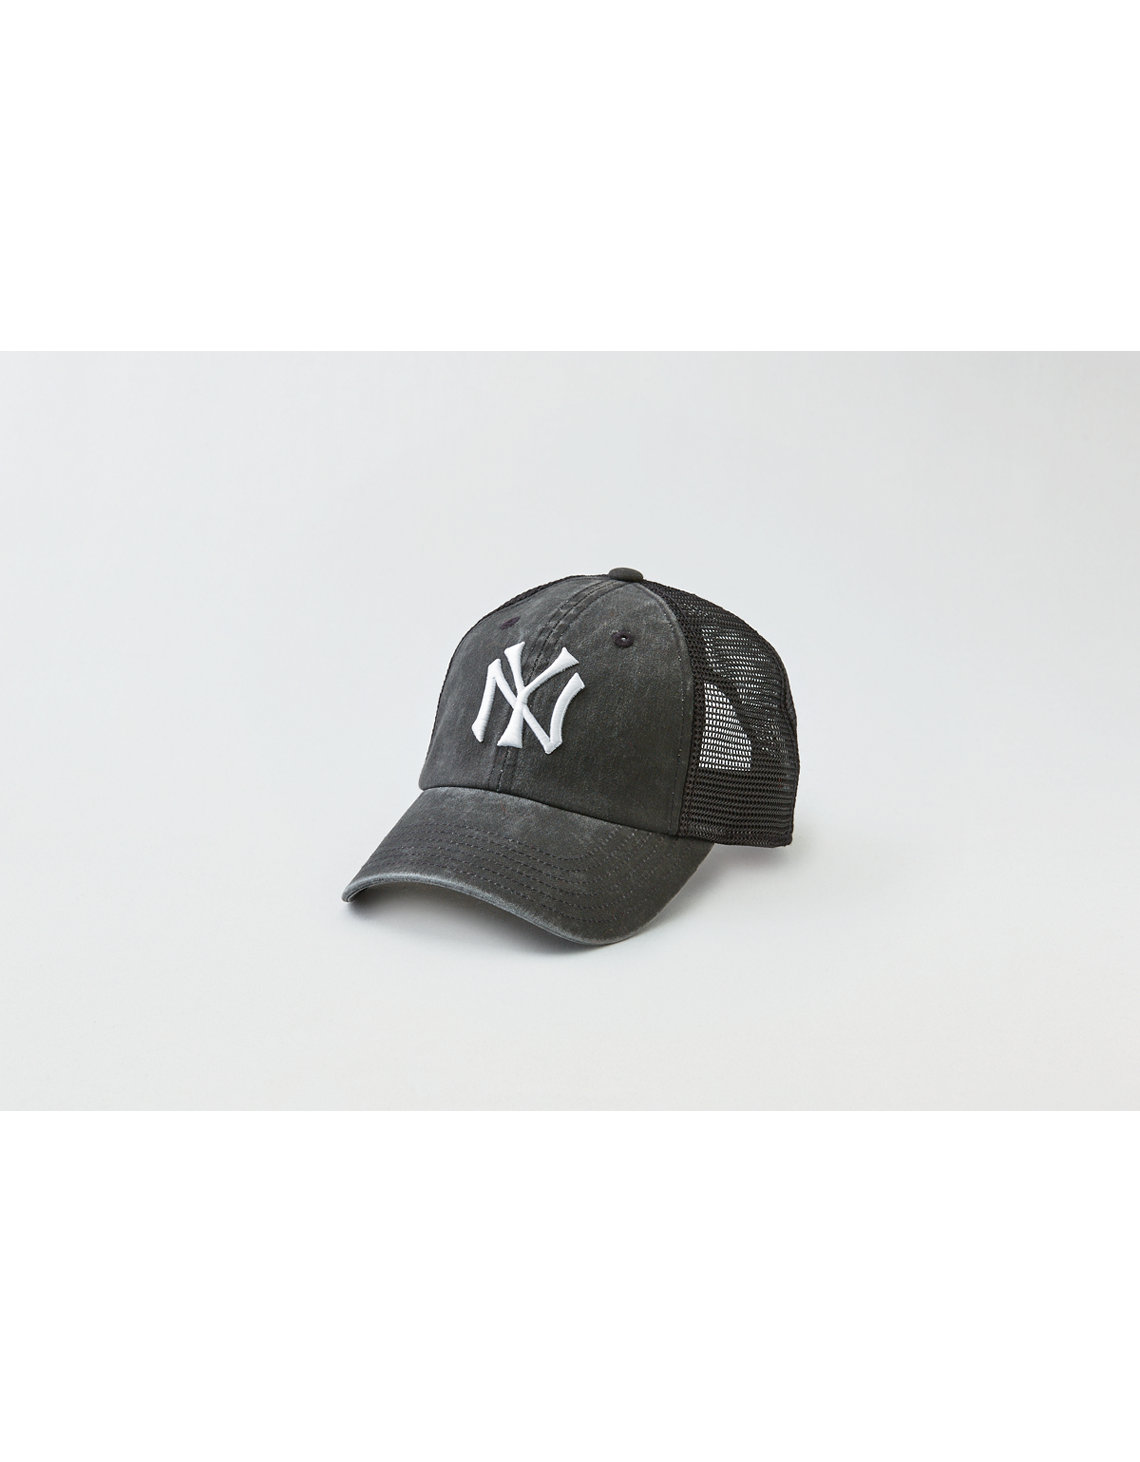 dff30fcde5f American Needle New York Yankees Hat